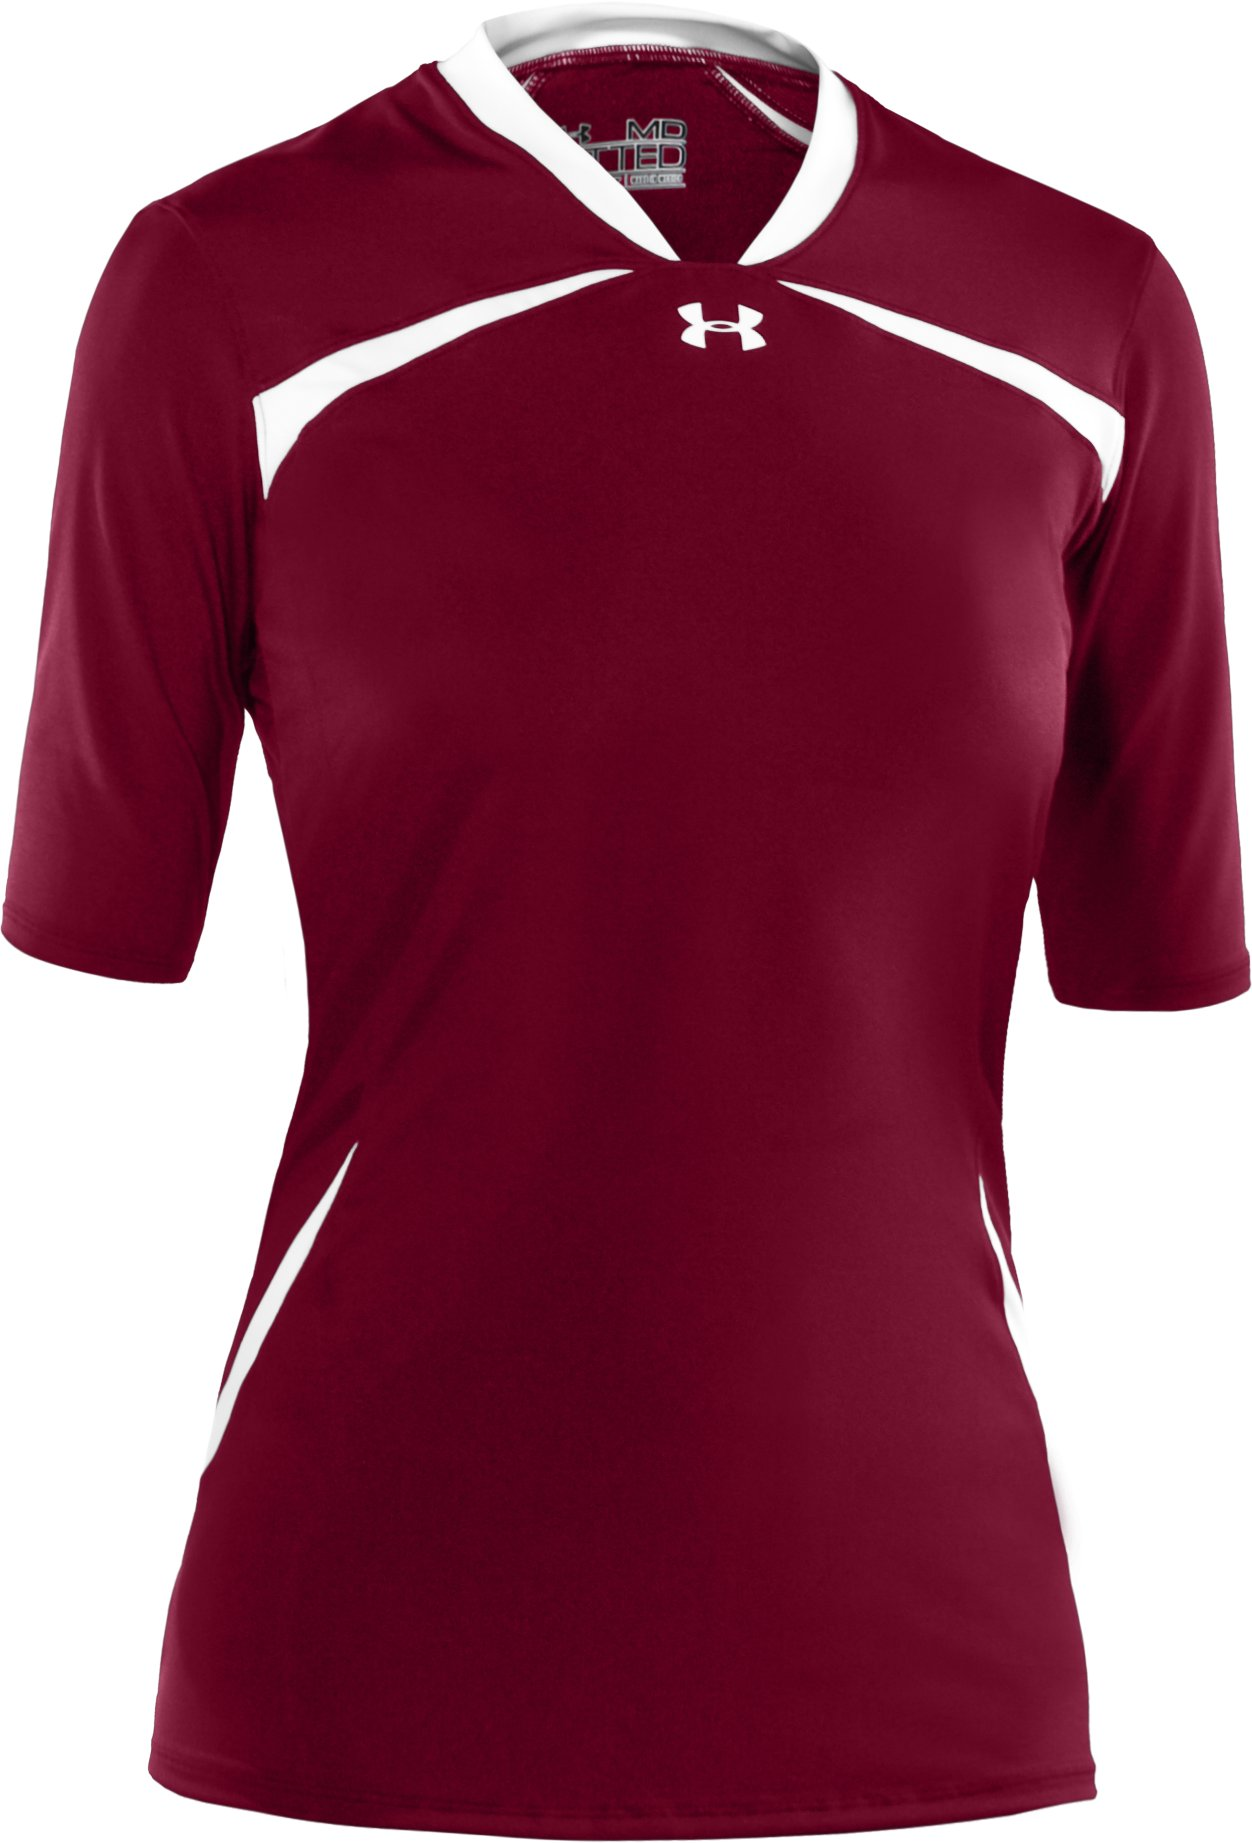 Women's UA Elevate ½ Sleeve Volleyball Jersey, Maroon